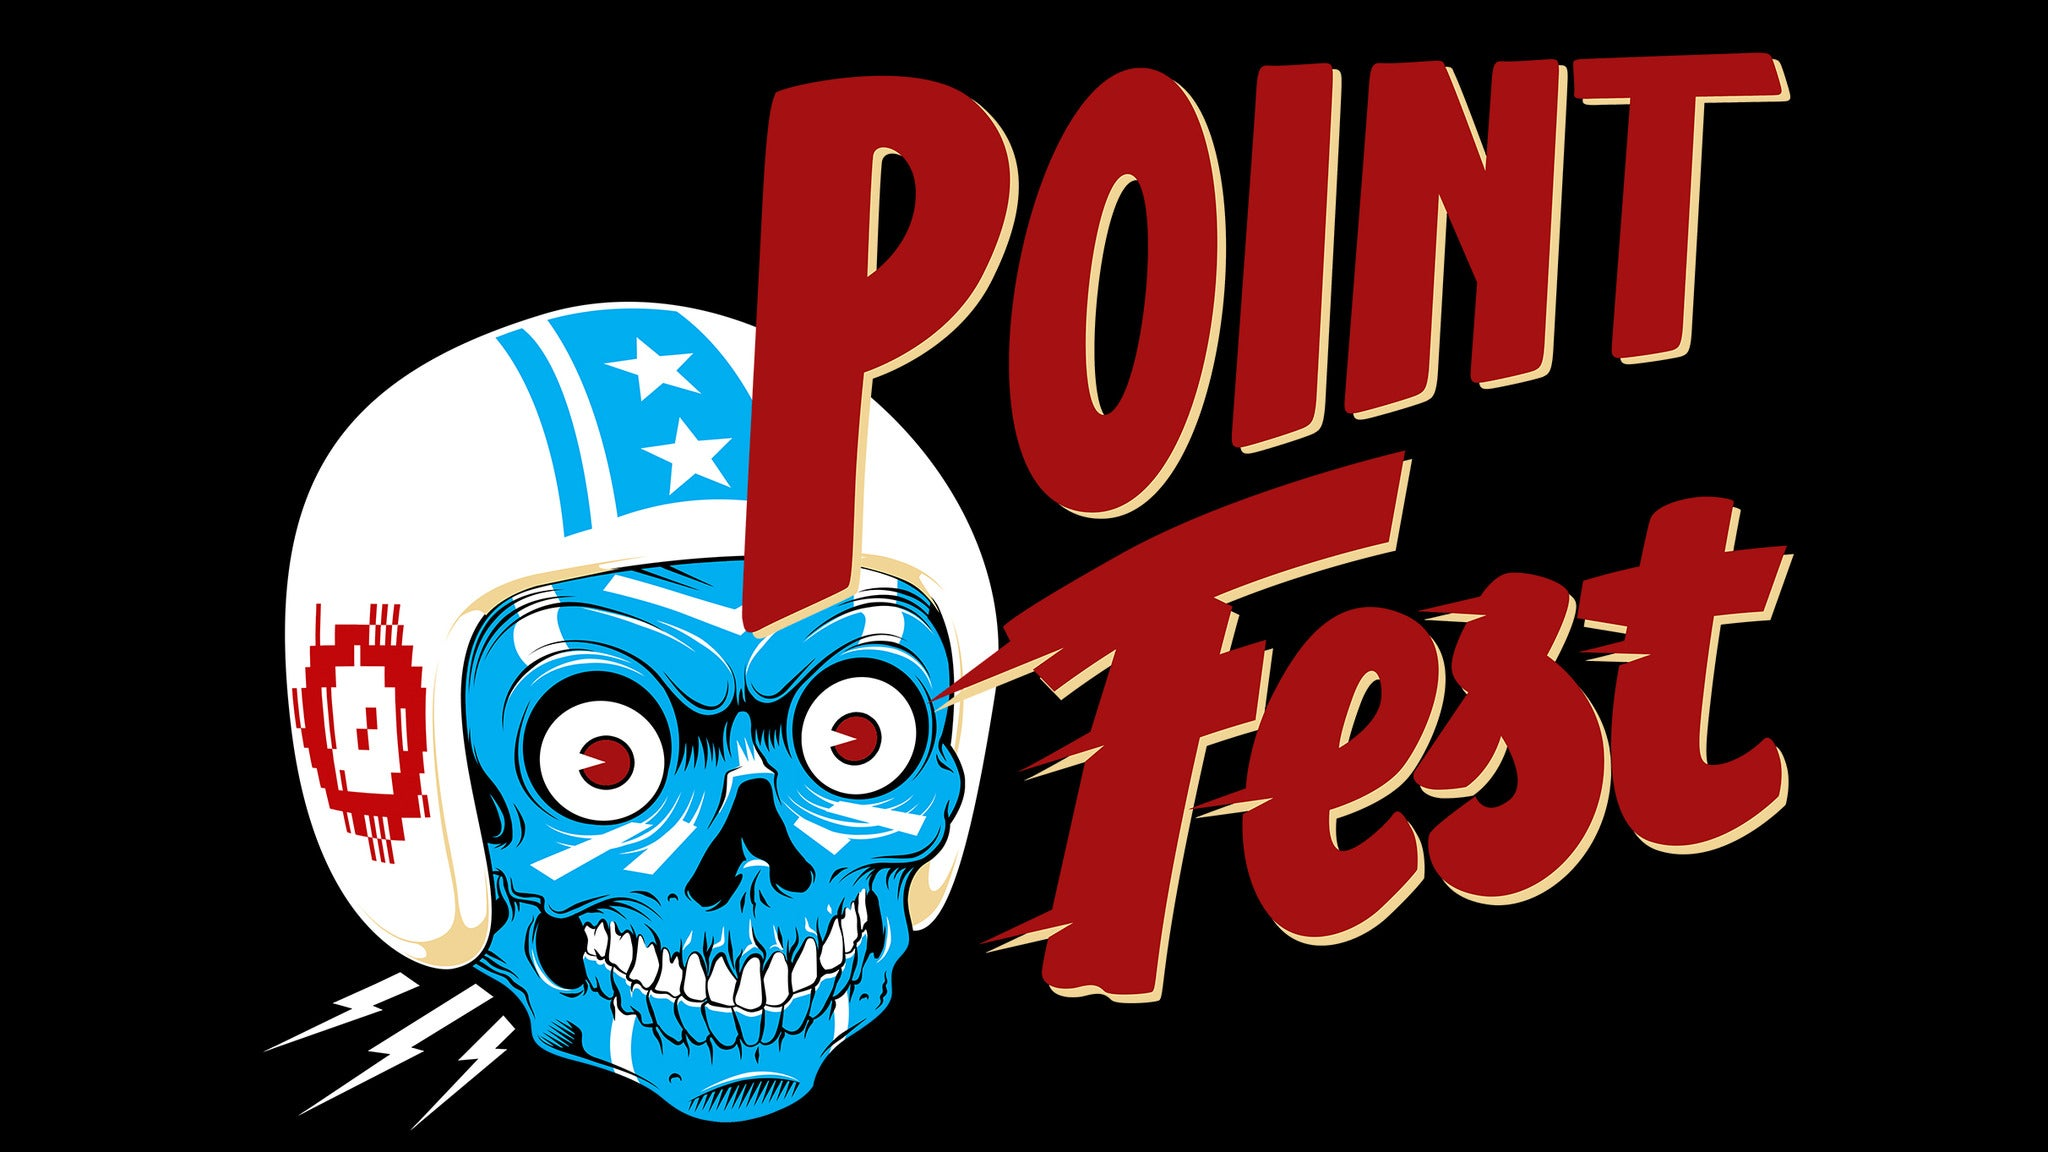 105.7 The Point Presents : POINTFEST